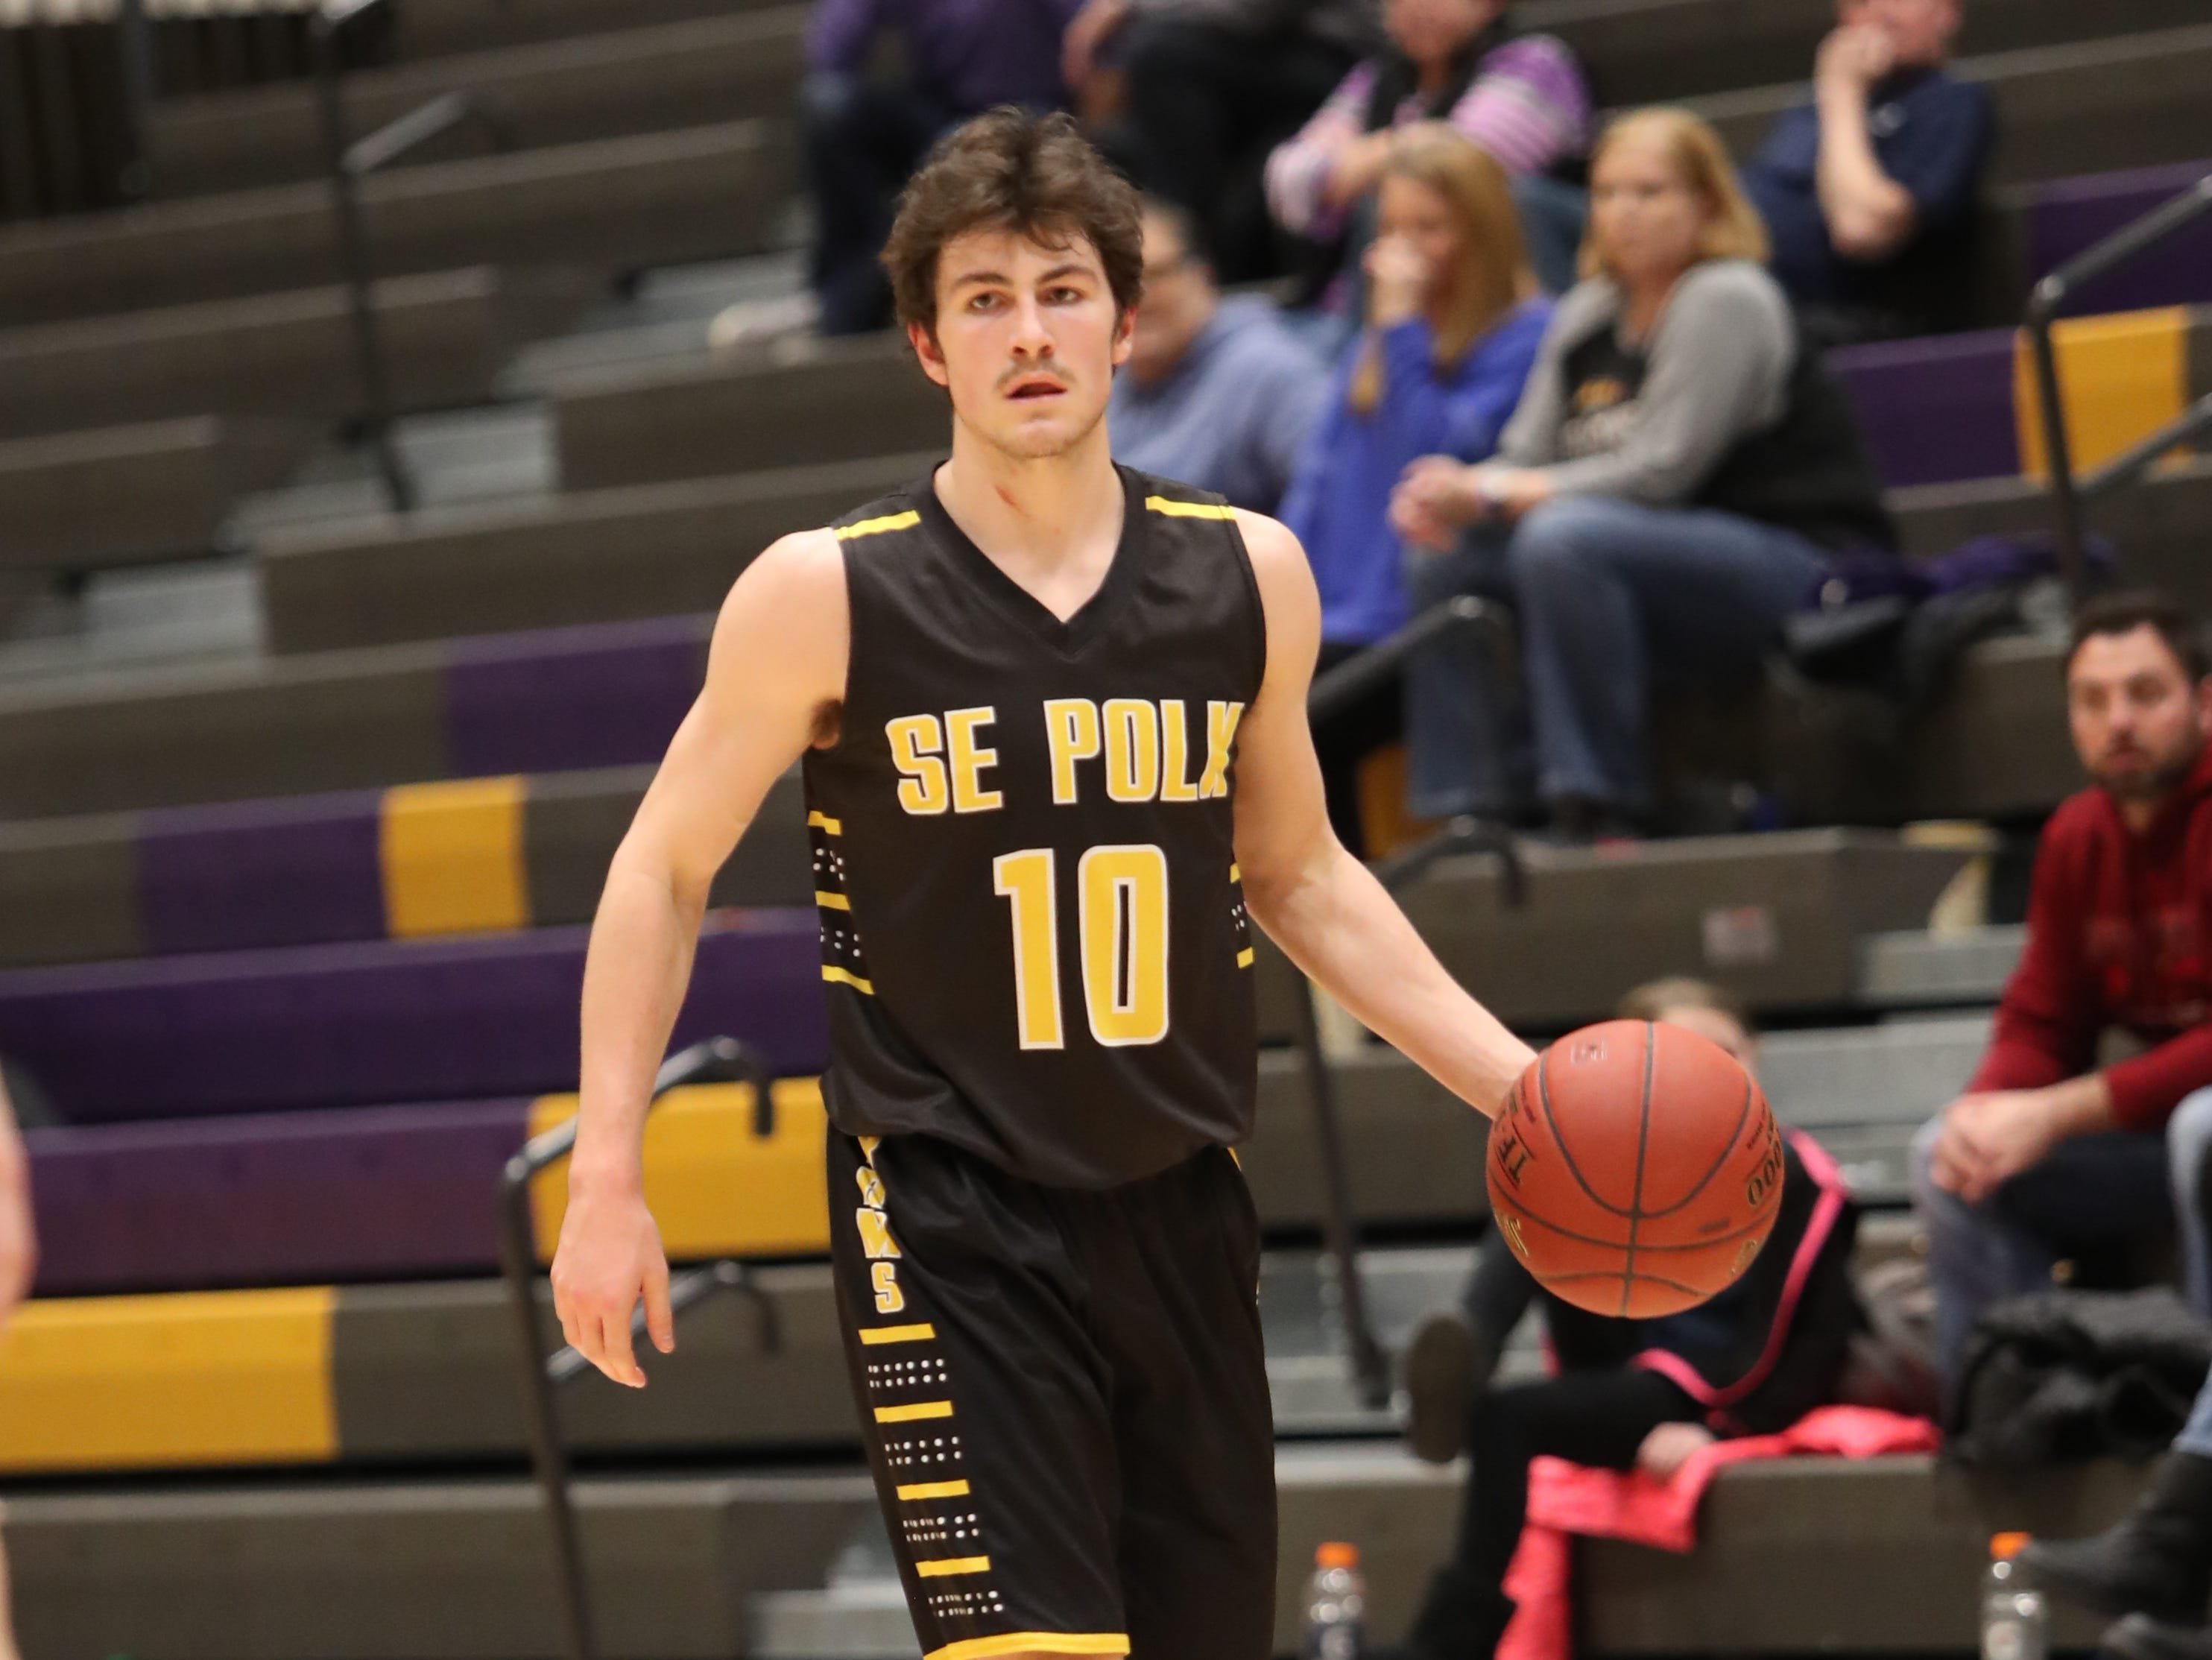 Southeast Polk's Daniel Hackbarth (10) brings the ball up the court Feb. 5 against the Dragons at Johnston High School. Johnston won the game 51-44.